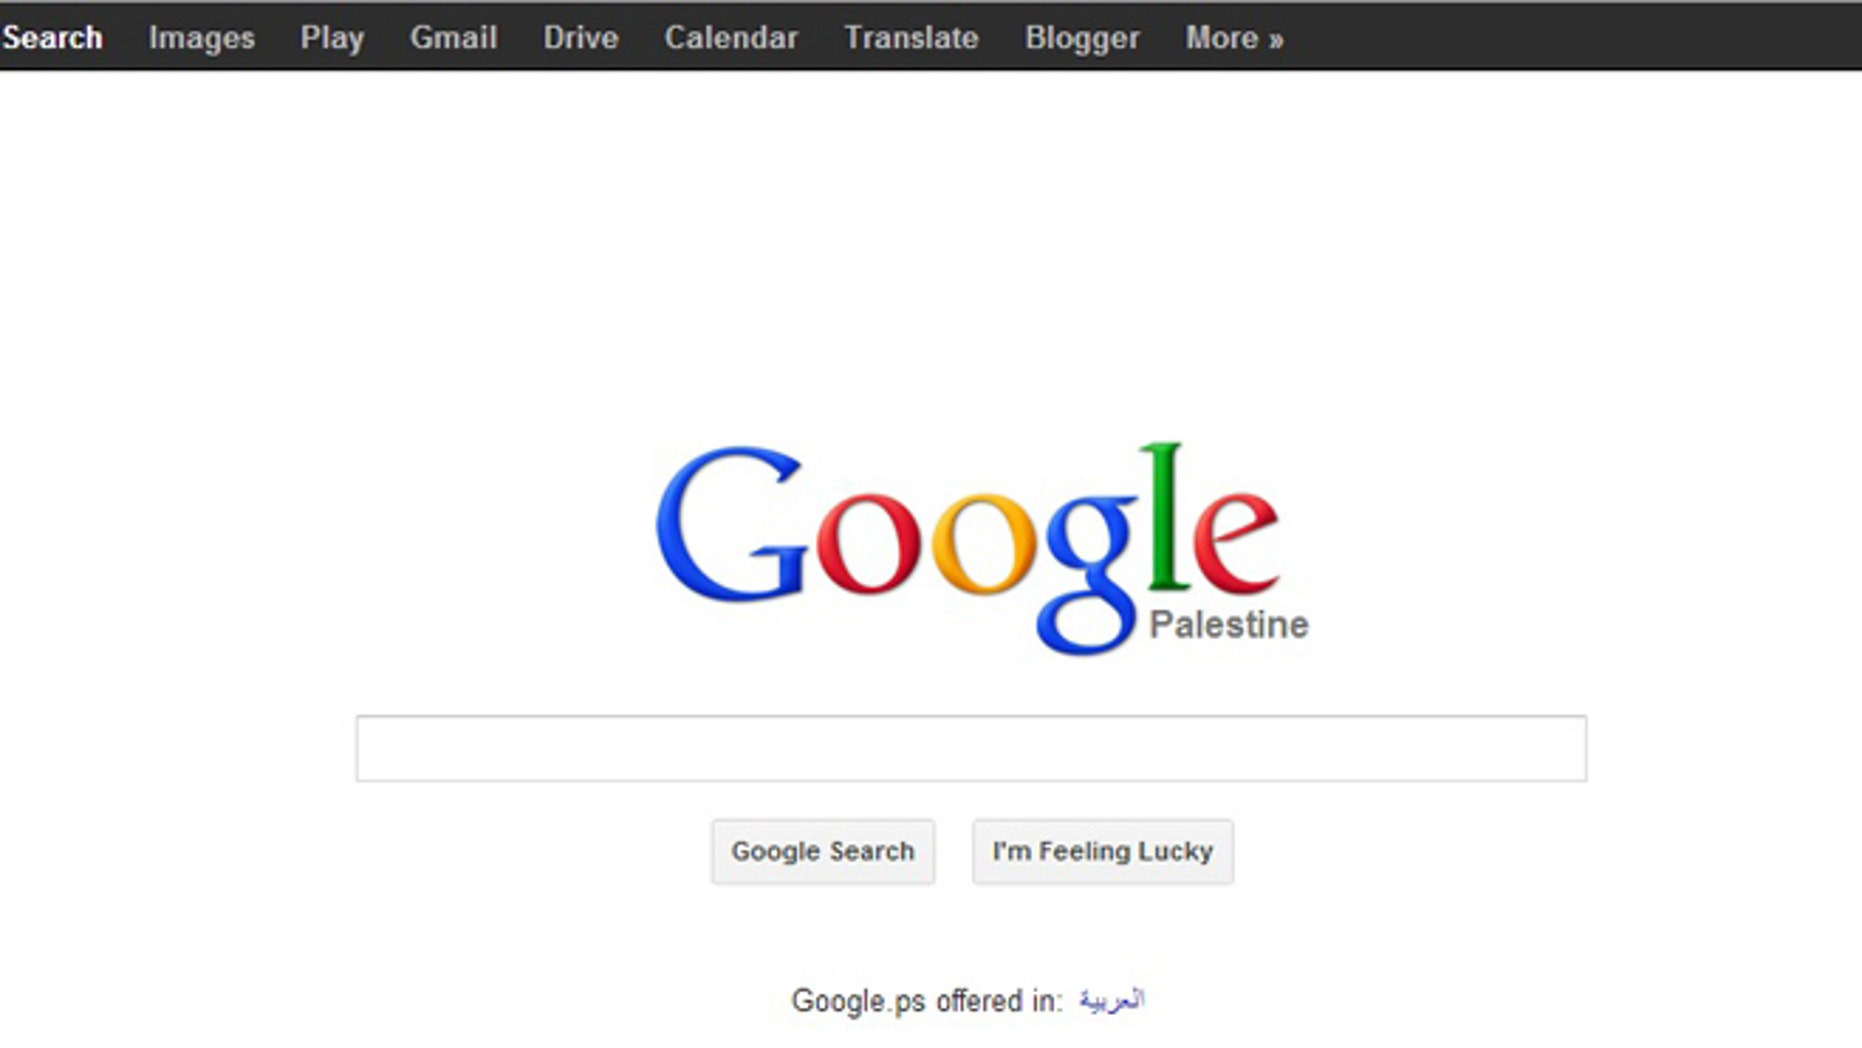 May 3, 2013: Google is de facto recognizing a state of Palestine -- at least on its local home page in the Palestinian territories.